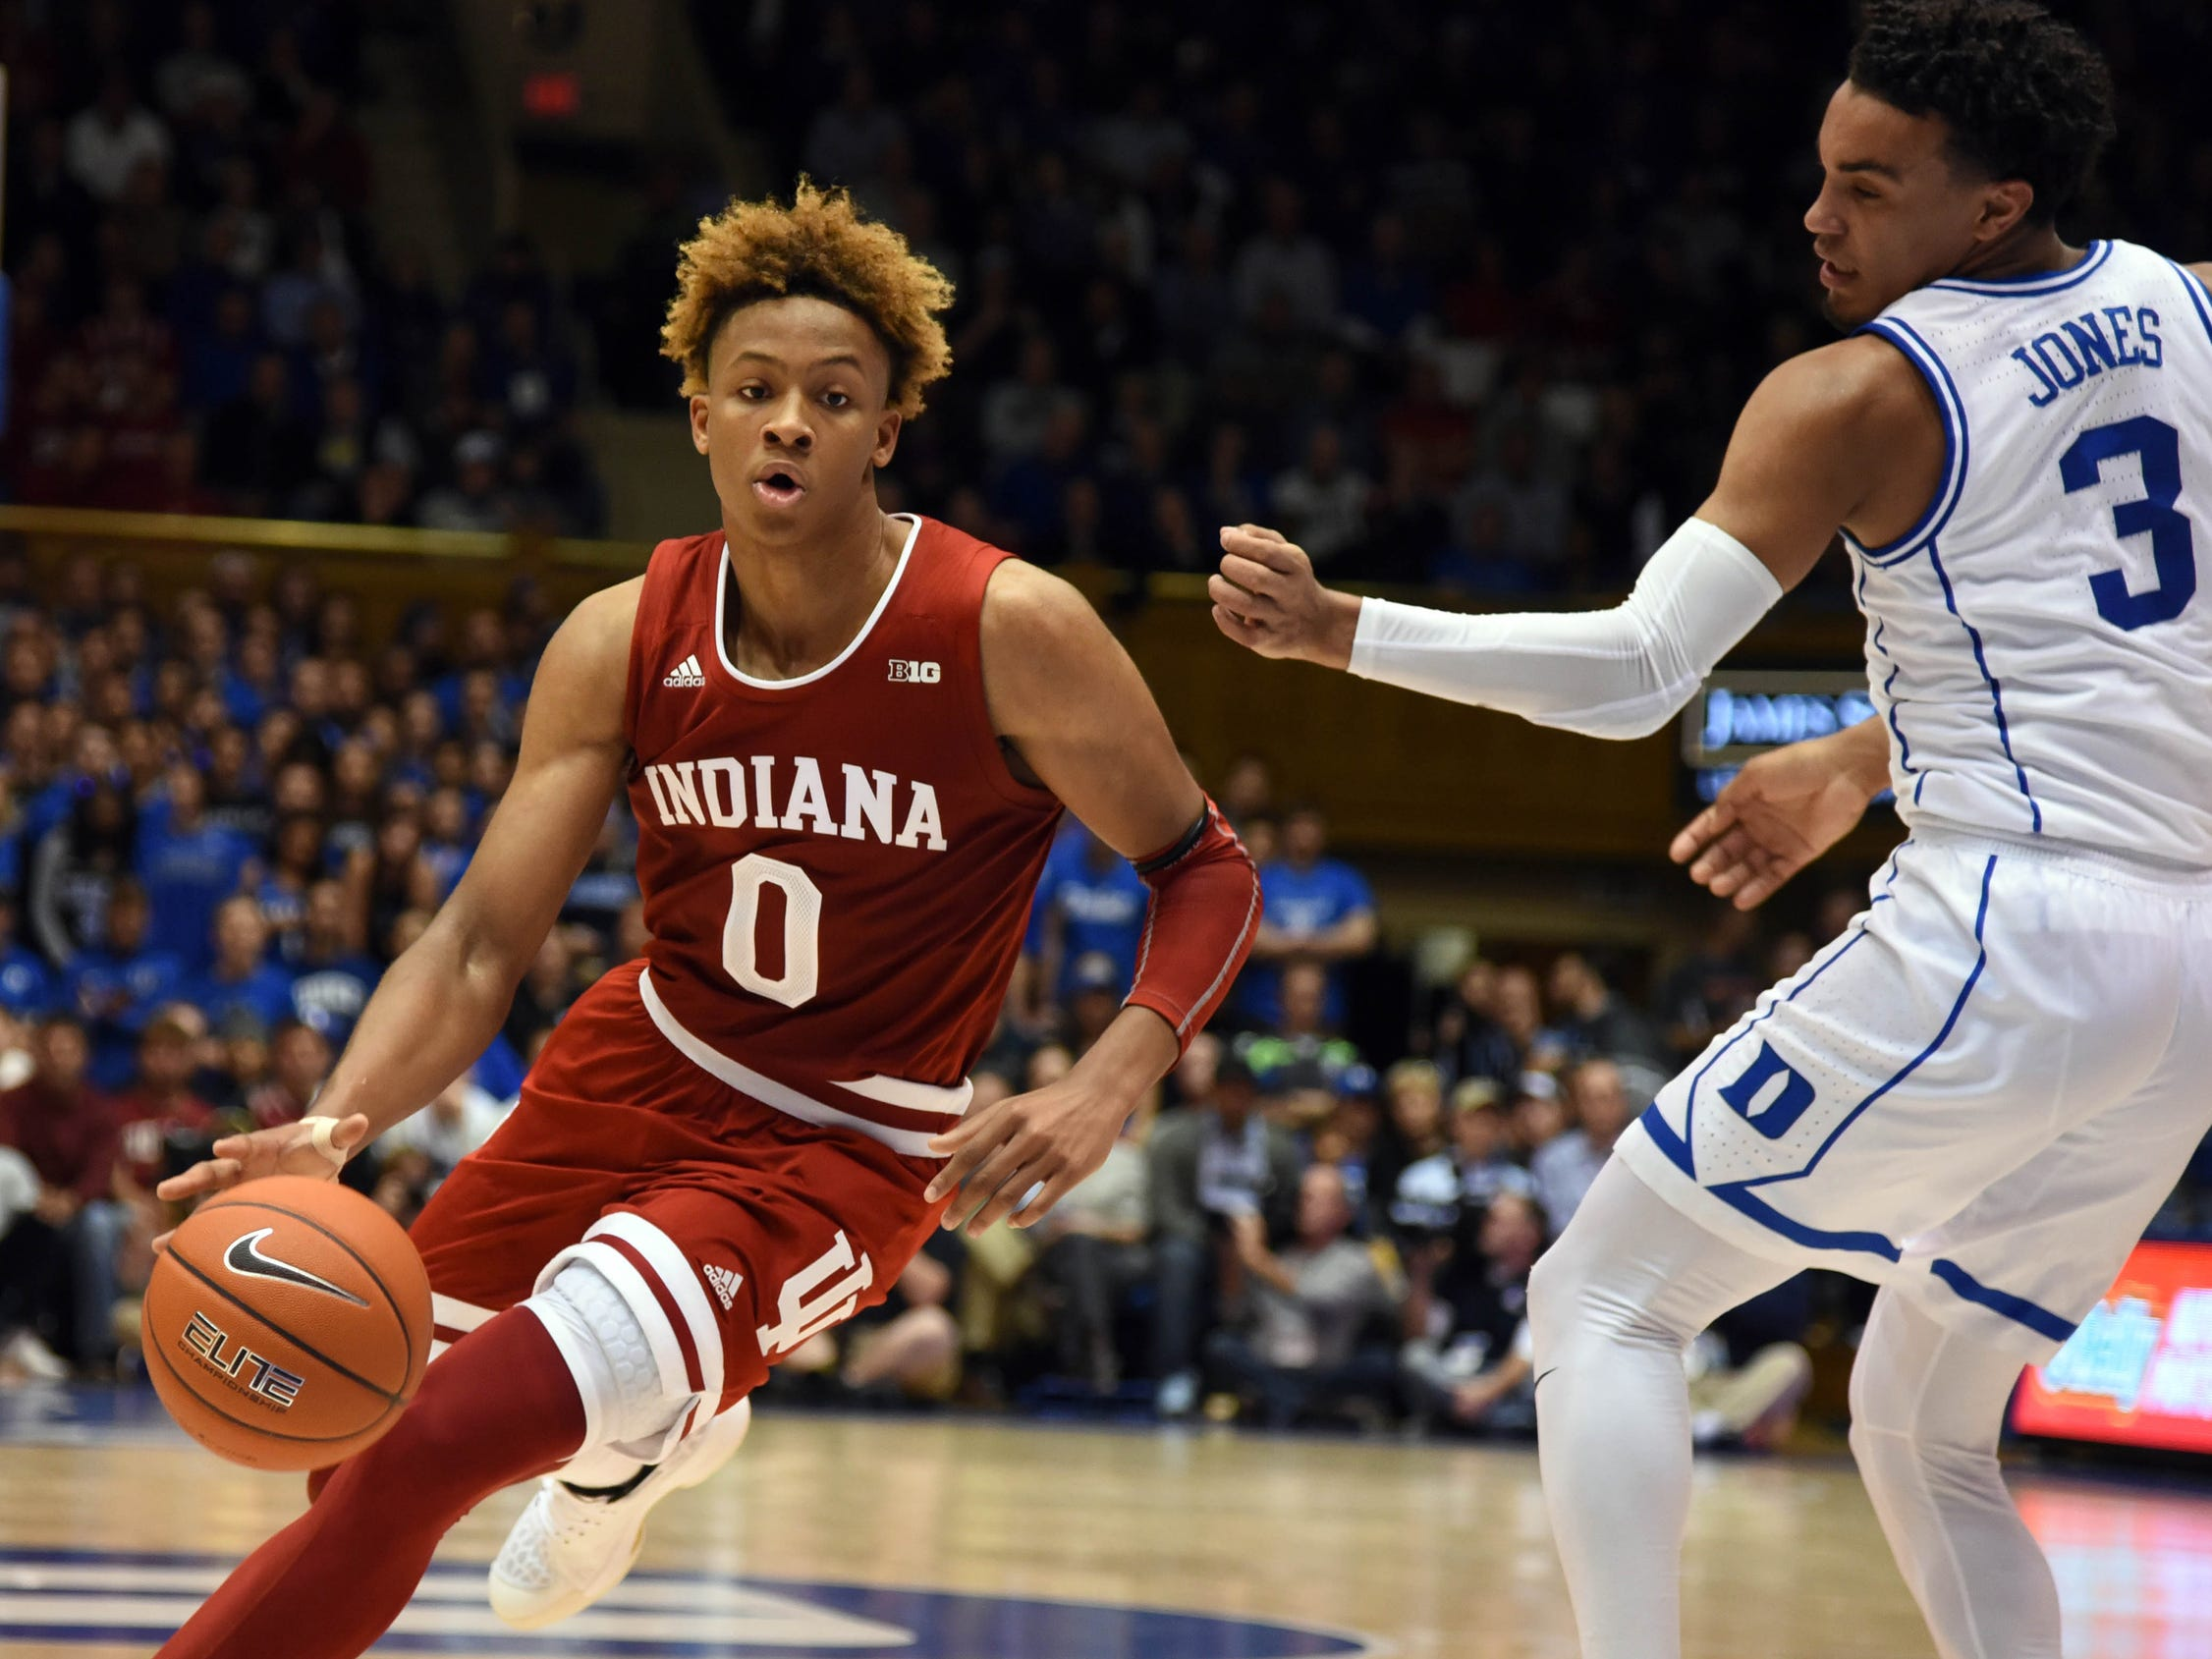 No. 5: Indiana Hoosiers (8-2, 2-0). Freshman guard Romeo Langford is scoring 18.2 points per game and dishing 2.3 assists.